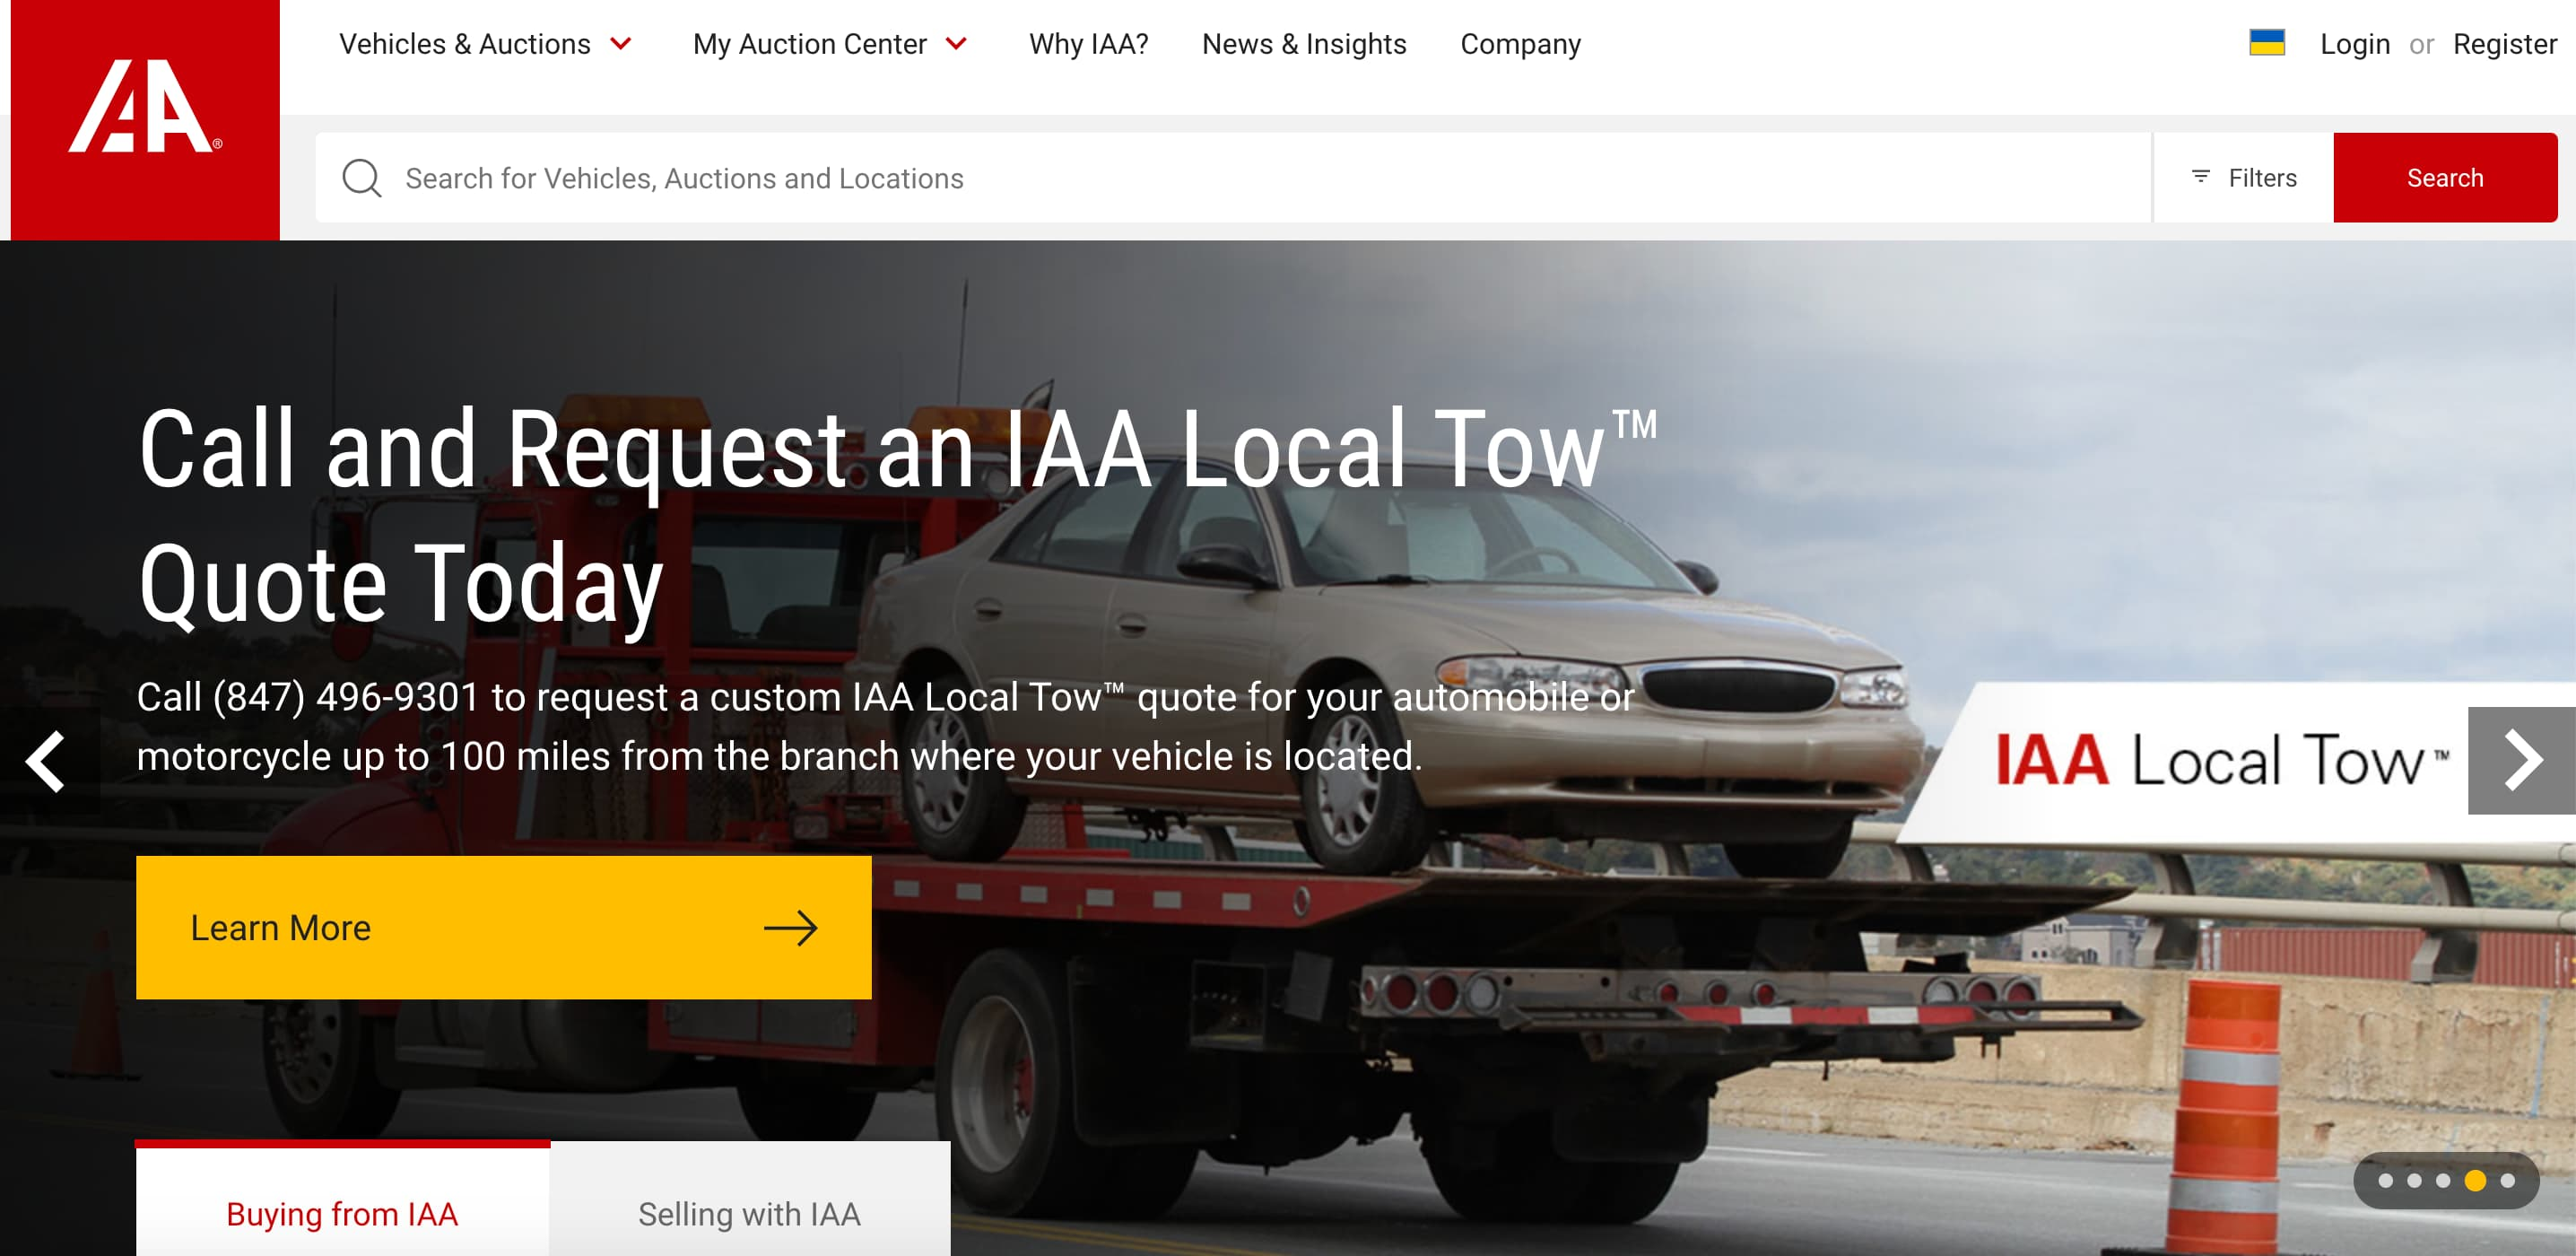 iaai cars usa